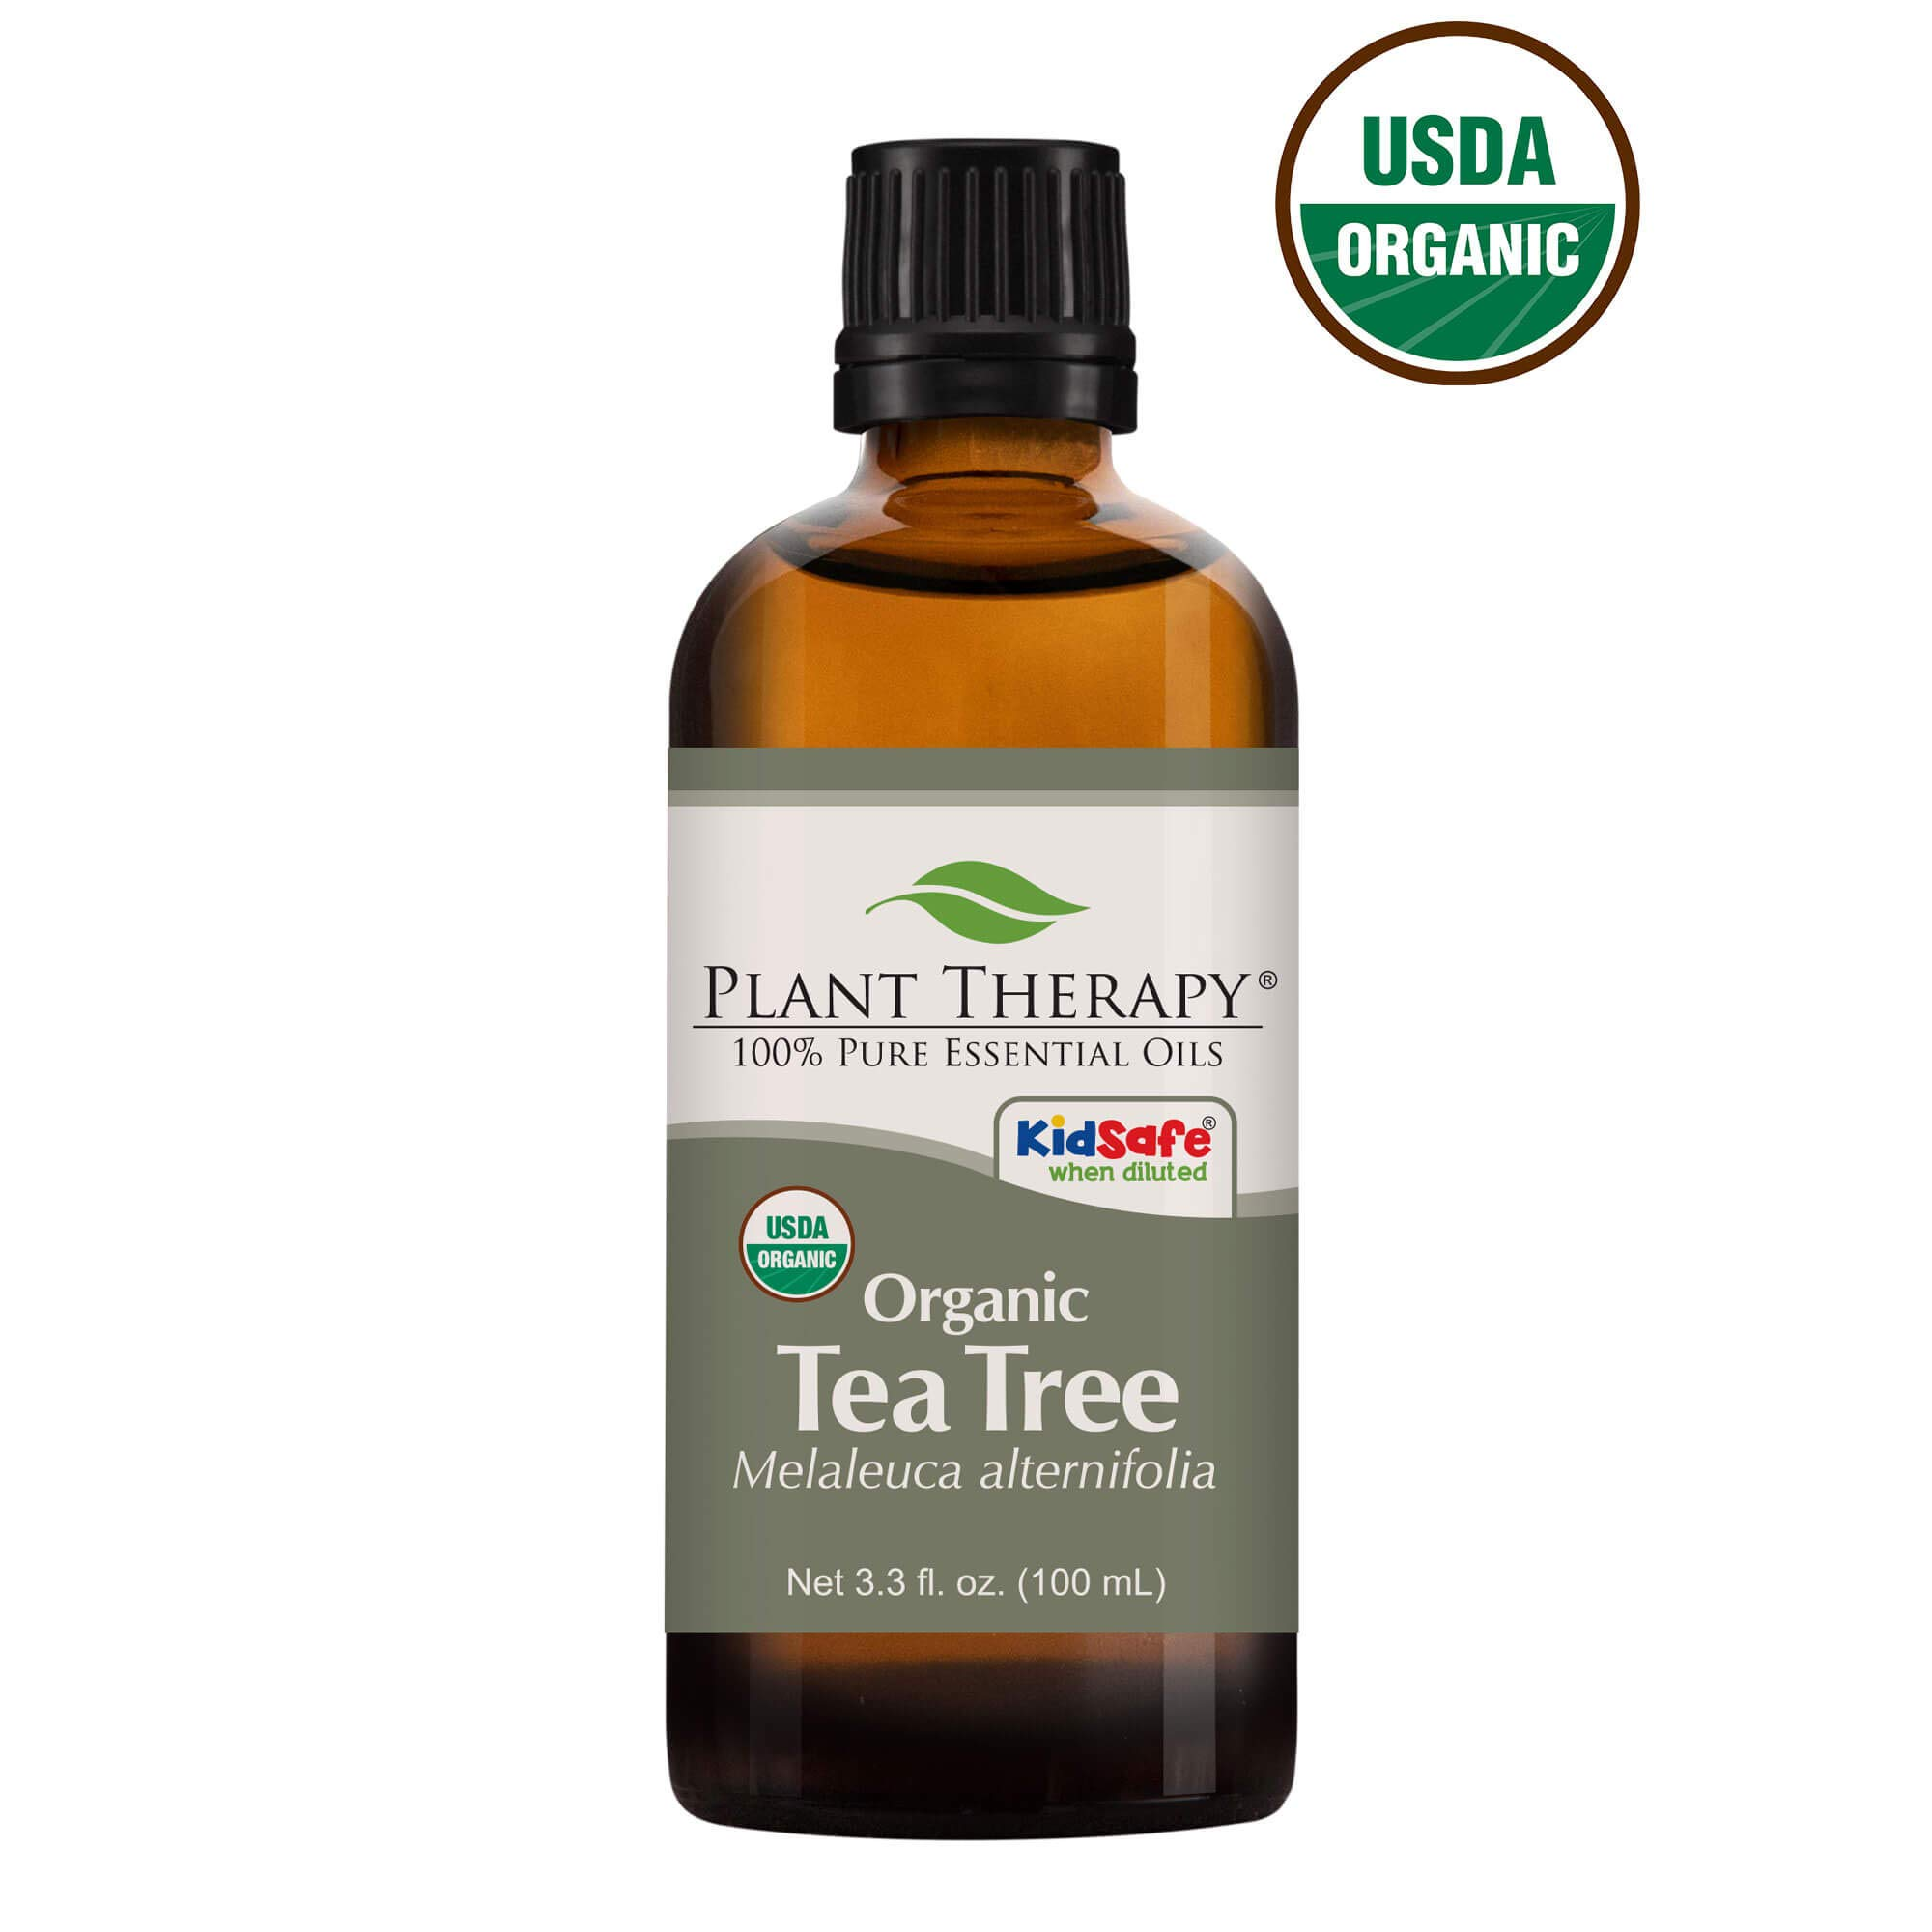 Plant Therapy Tea Tree Organic Essential Oil 100% Pure, USDA Certified Organic, Undiluted, Natural Aromatherapy, Therapeutic Grade 100 mL (3.38 oz) by Plant Therapy